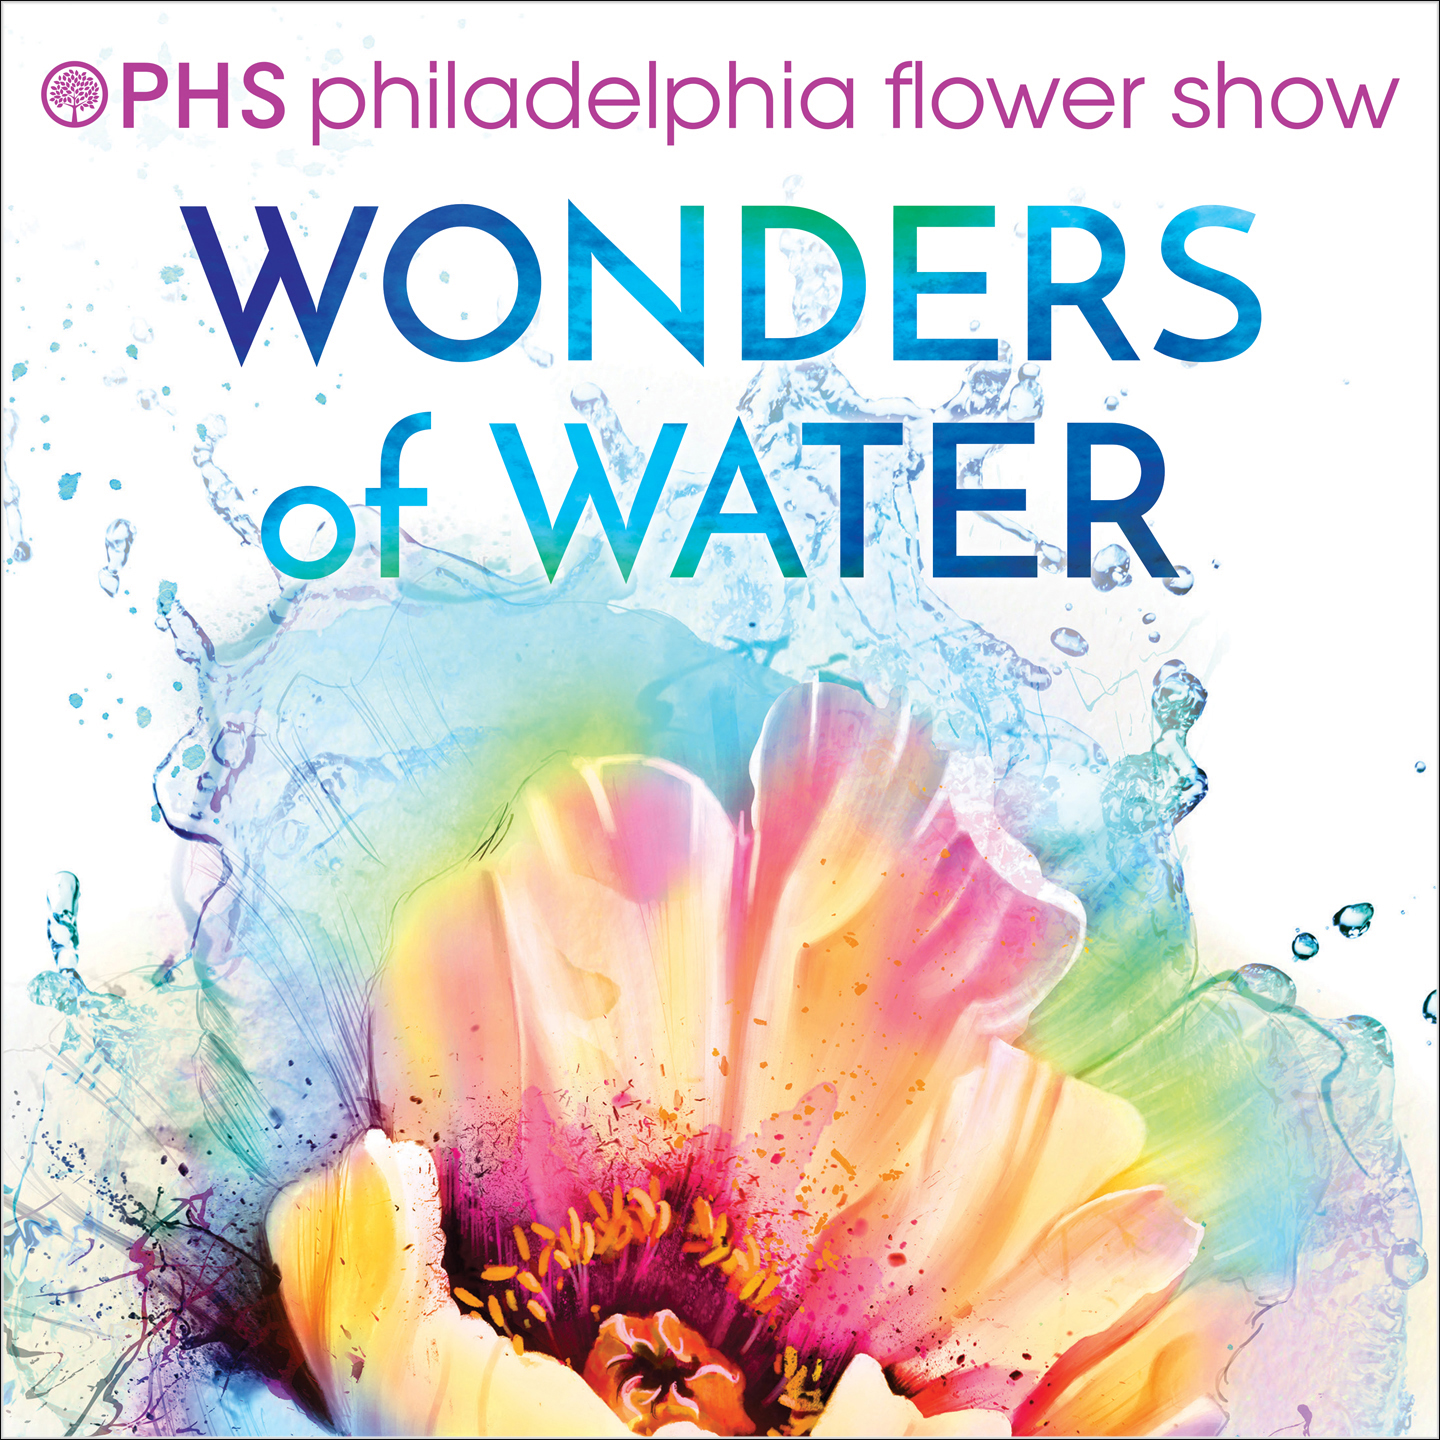 The poster for the 2018 PHS Philadelphia Flower Show, which won gold for Best Promotional Poster at the International Festivals & Events Association's annual Pinnacle Awards.